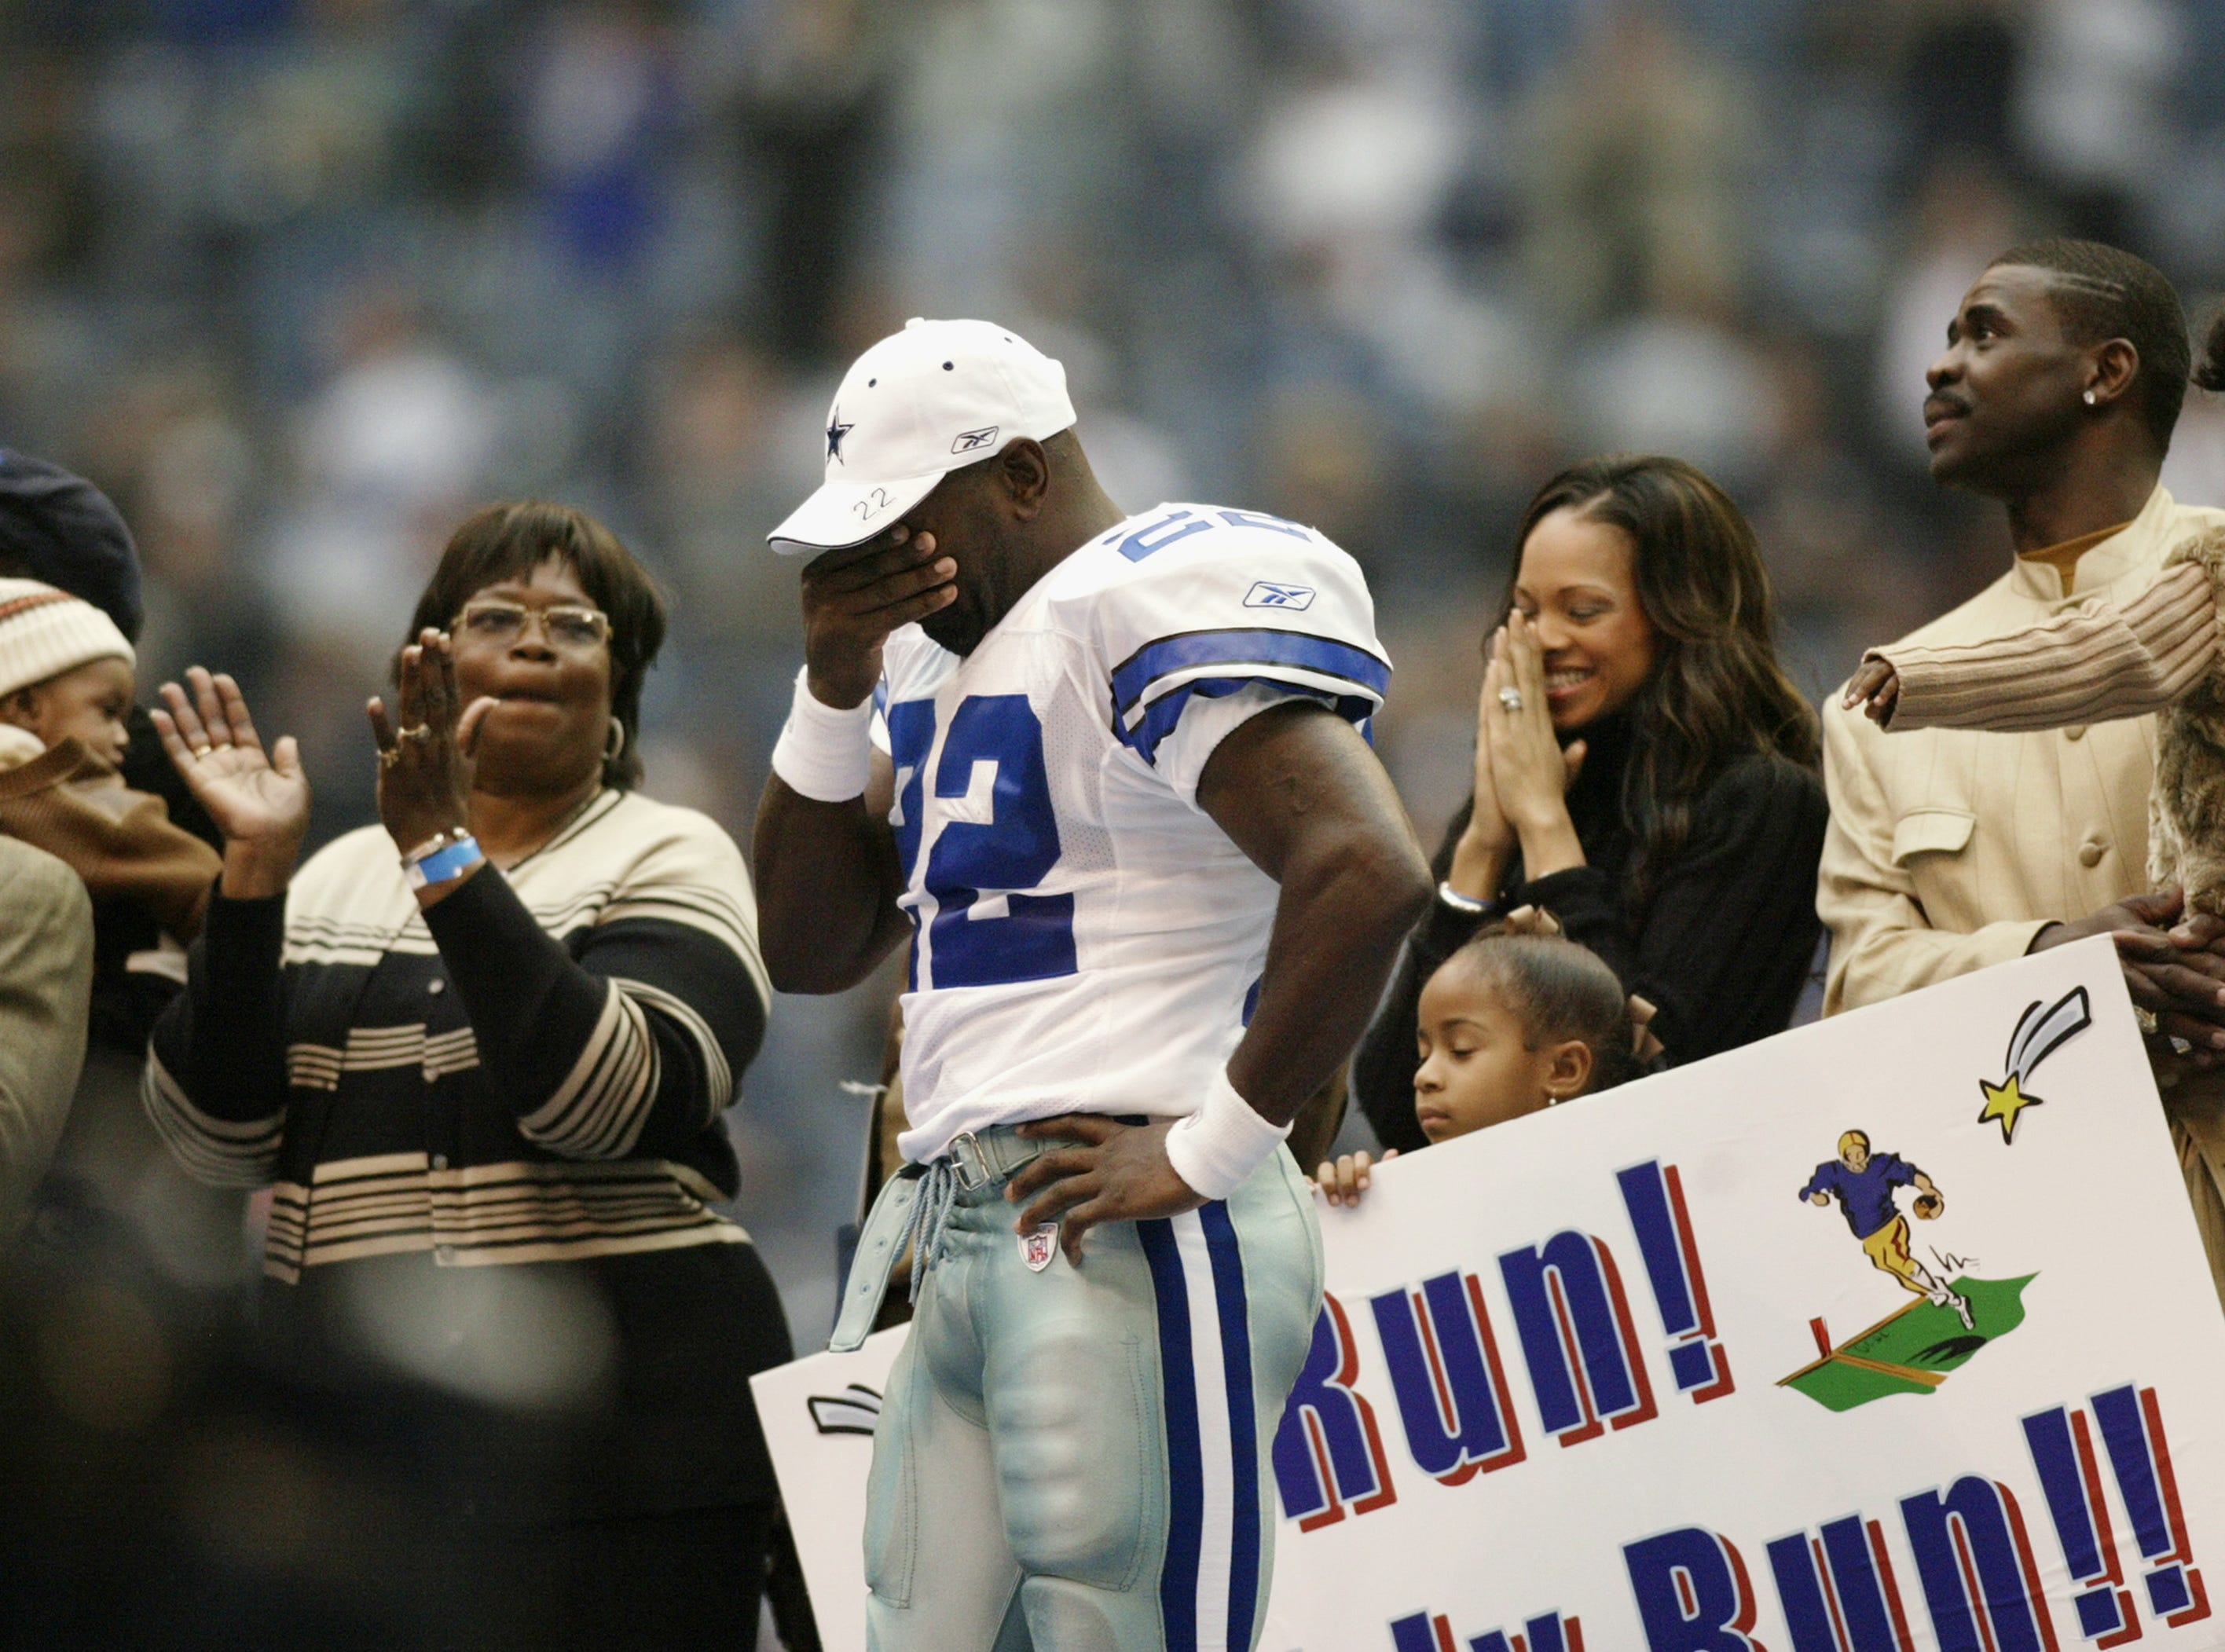 "IRVING, TX - OCTOBER 27:   Running Back Emmitt Smith #22 of the Dallas Cowboys is emotional for being celebrated as the ""All Time Leading Rusher"" during the NFL game against the Seattle Seahawks at Texas Stadium on October 27, 2002 in Irving, Texas. The Seahawks defeated the Cowboys 17-14. (Photo by Ronald Martinez/Getty Images)"